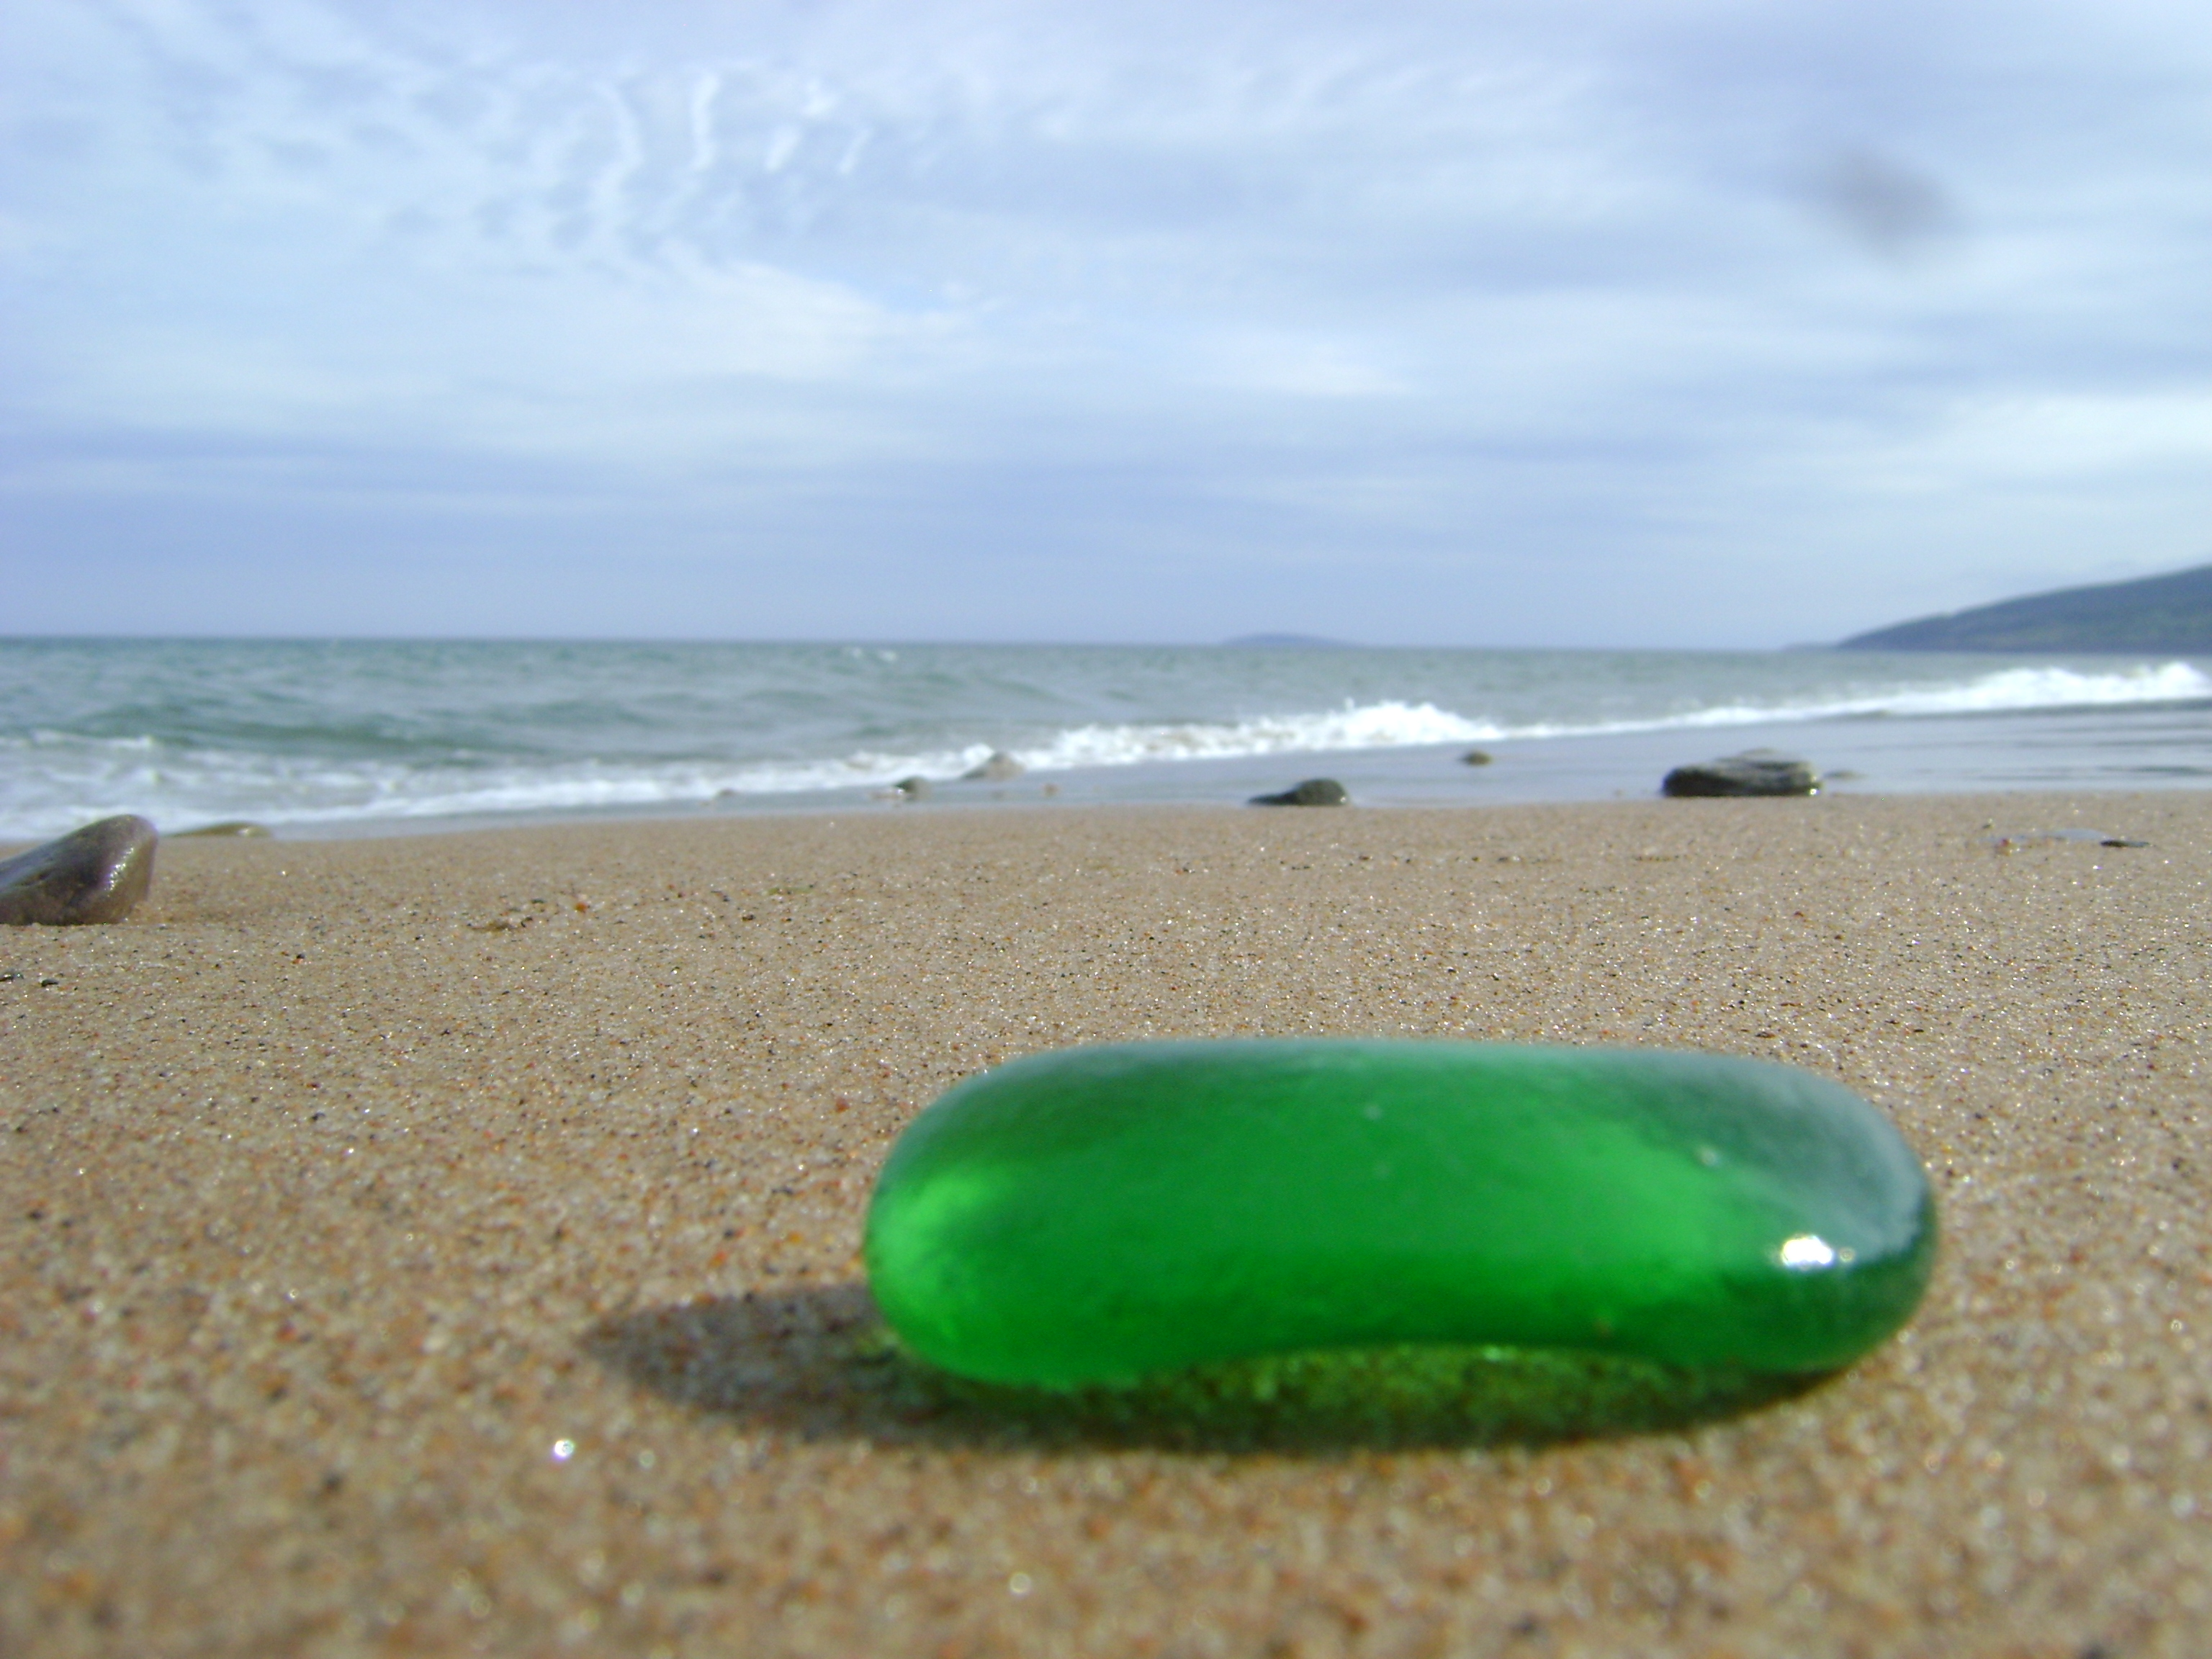 seaglass find on beach